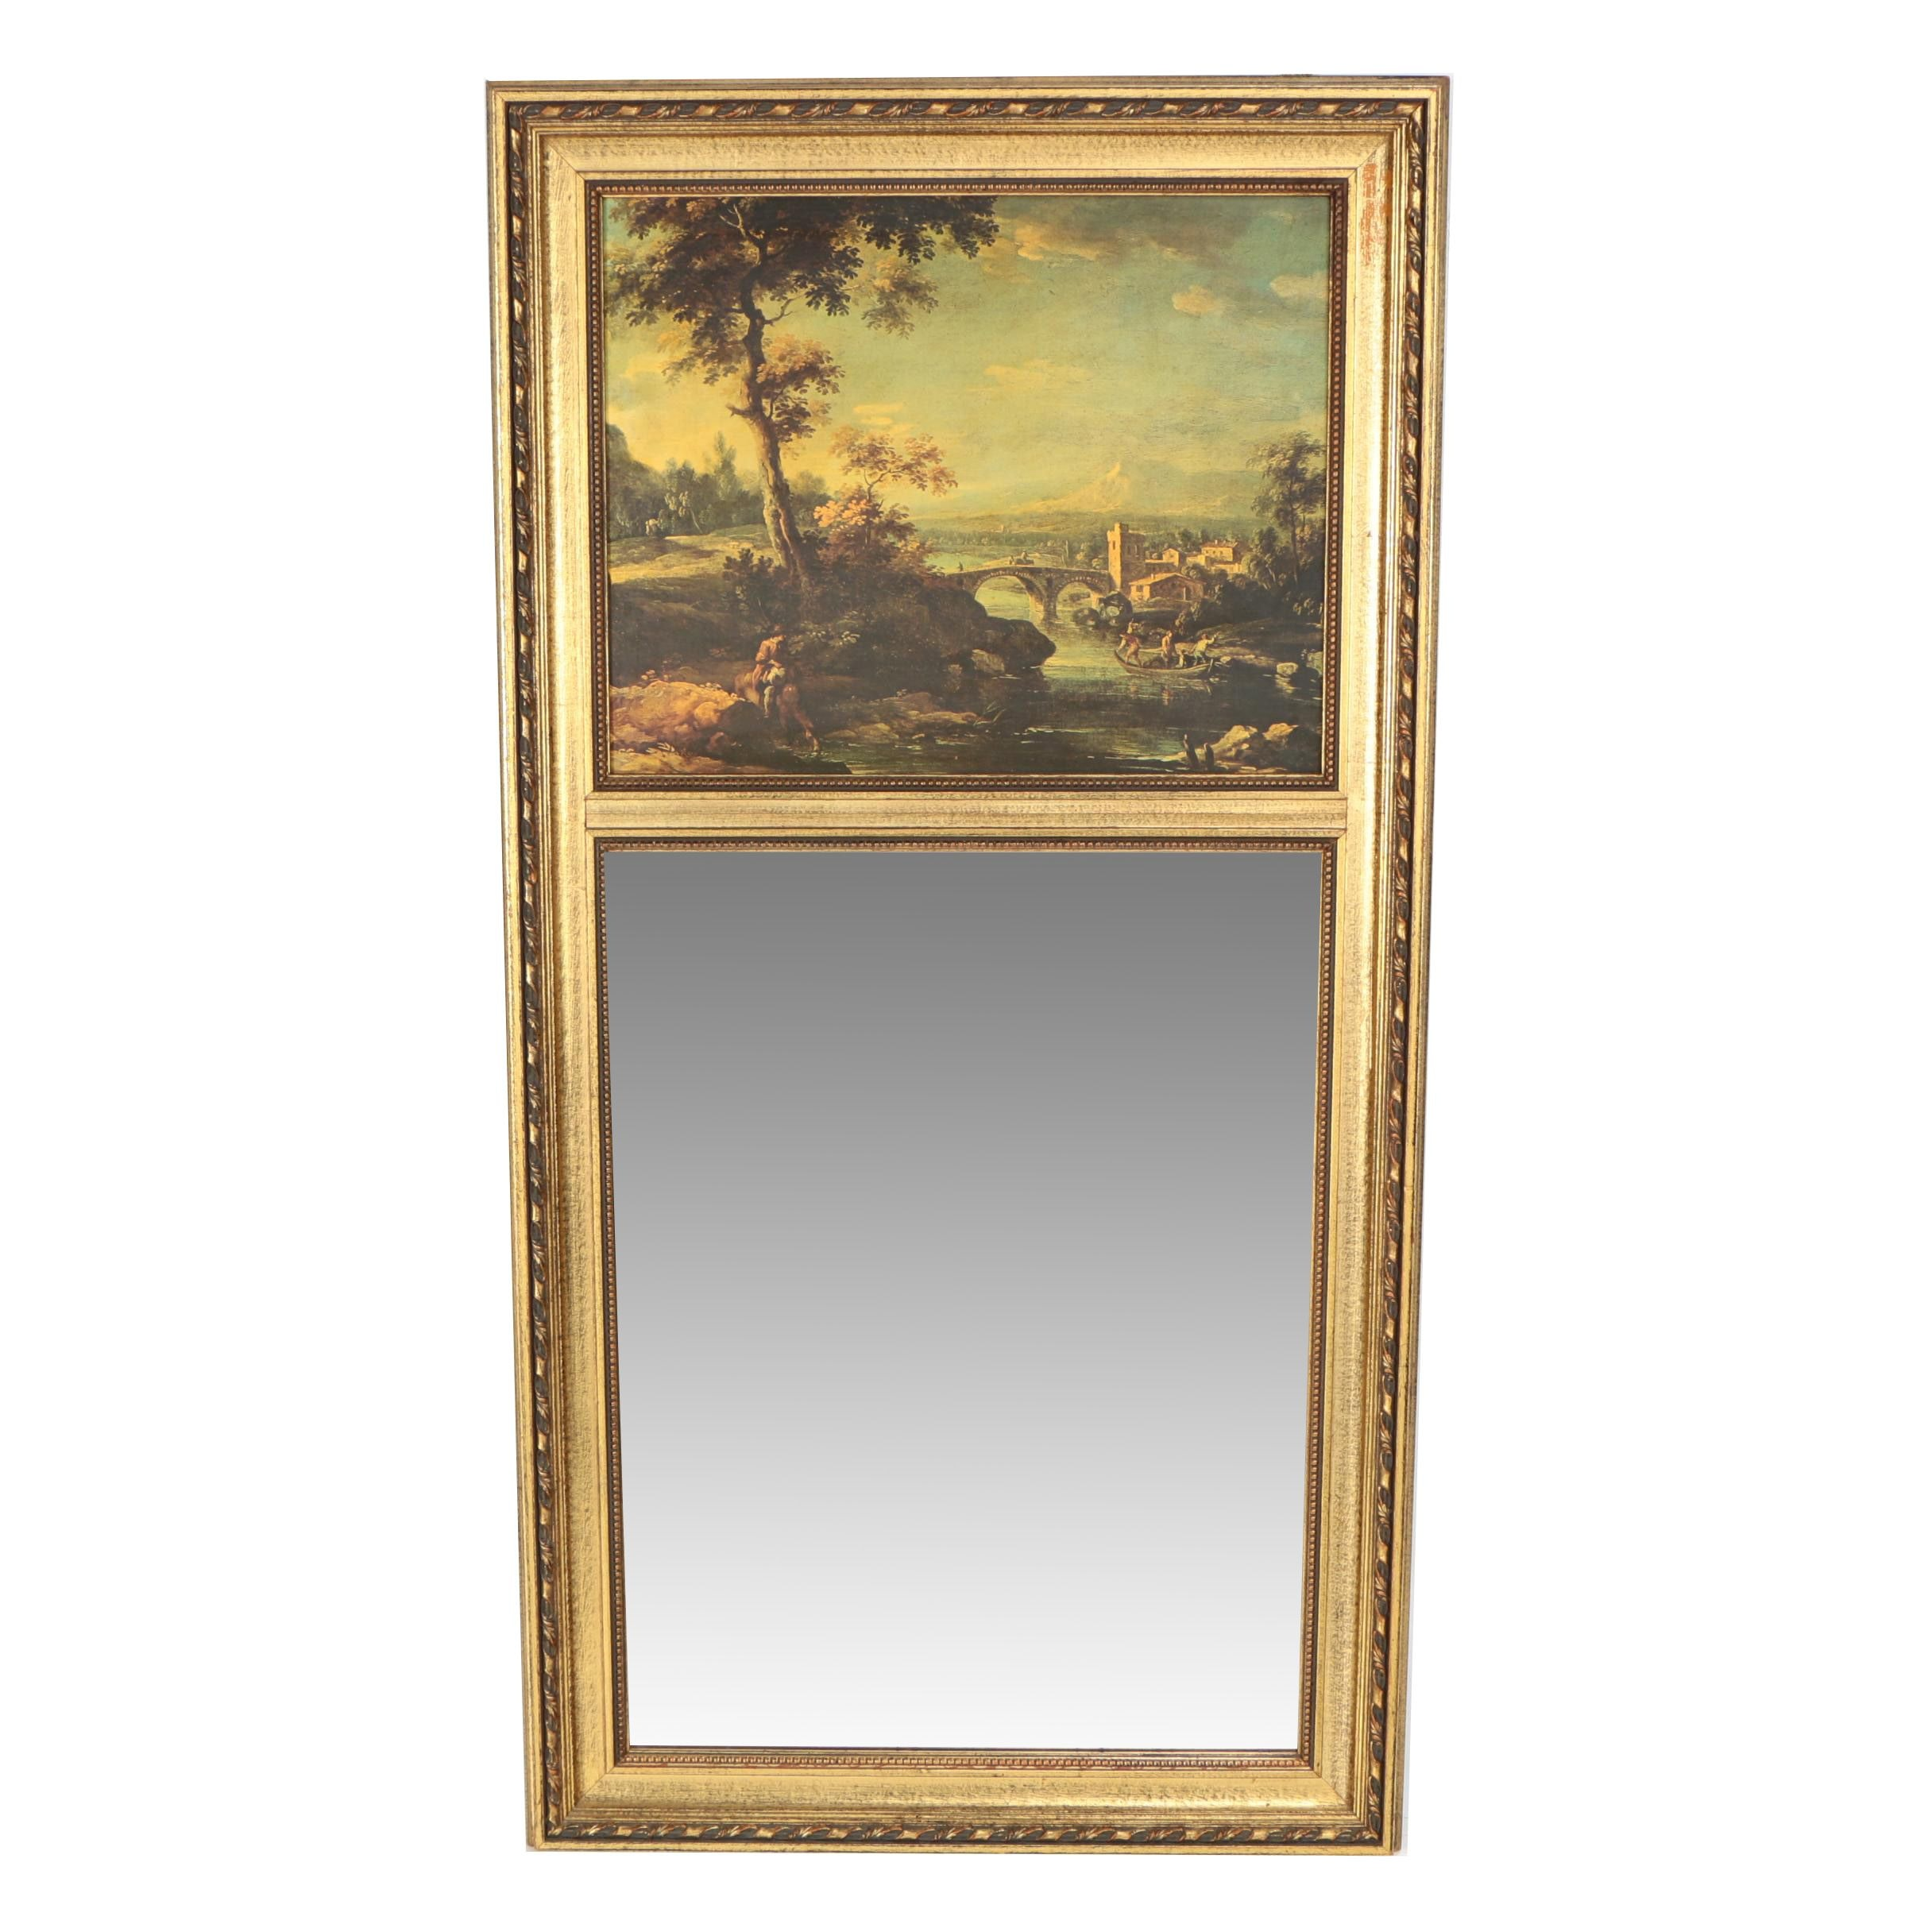 Trumeau Wall Mirror with Offset Lithograph after Claude Lorraine